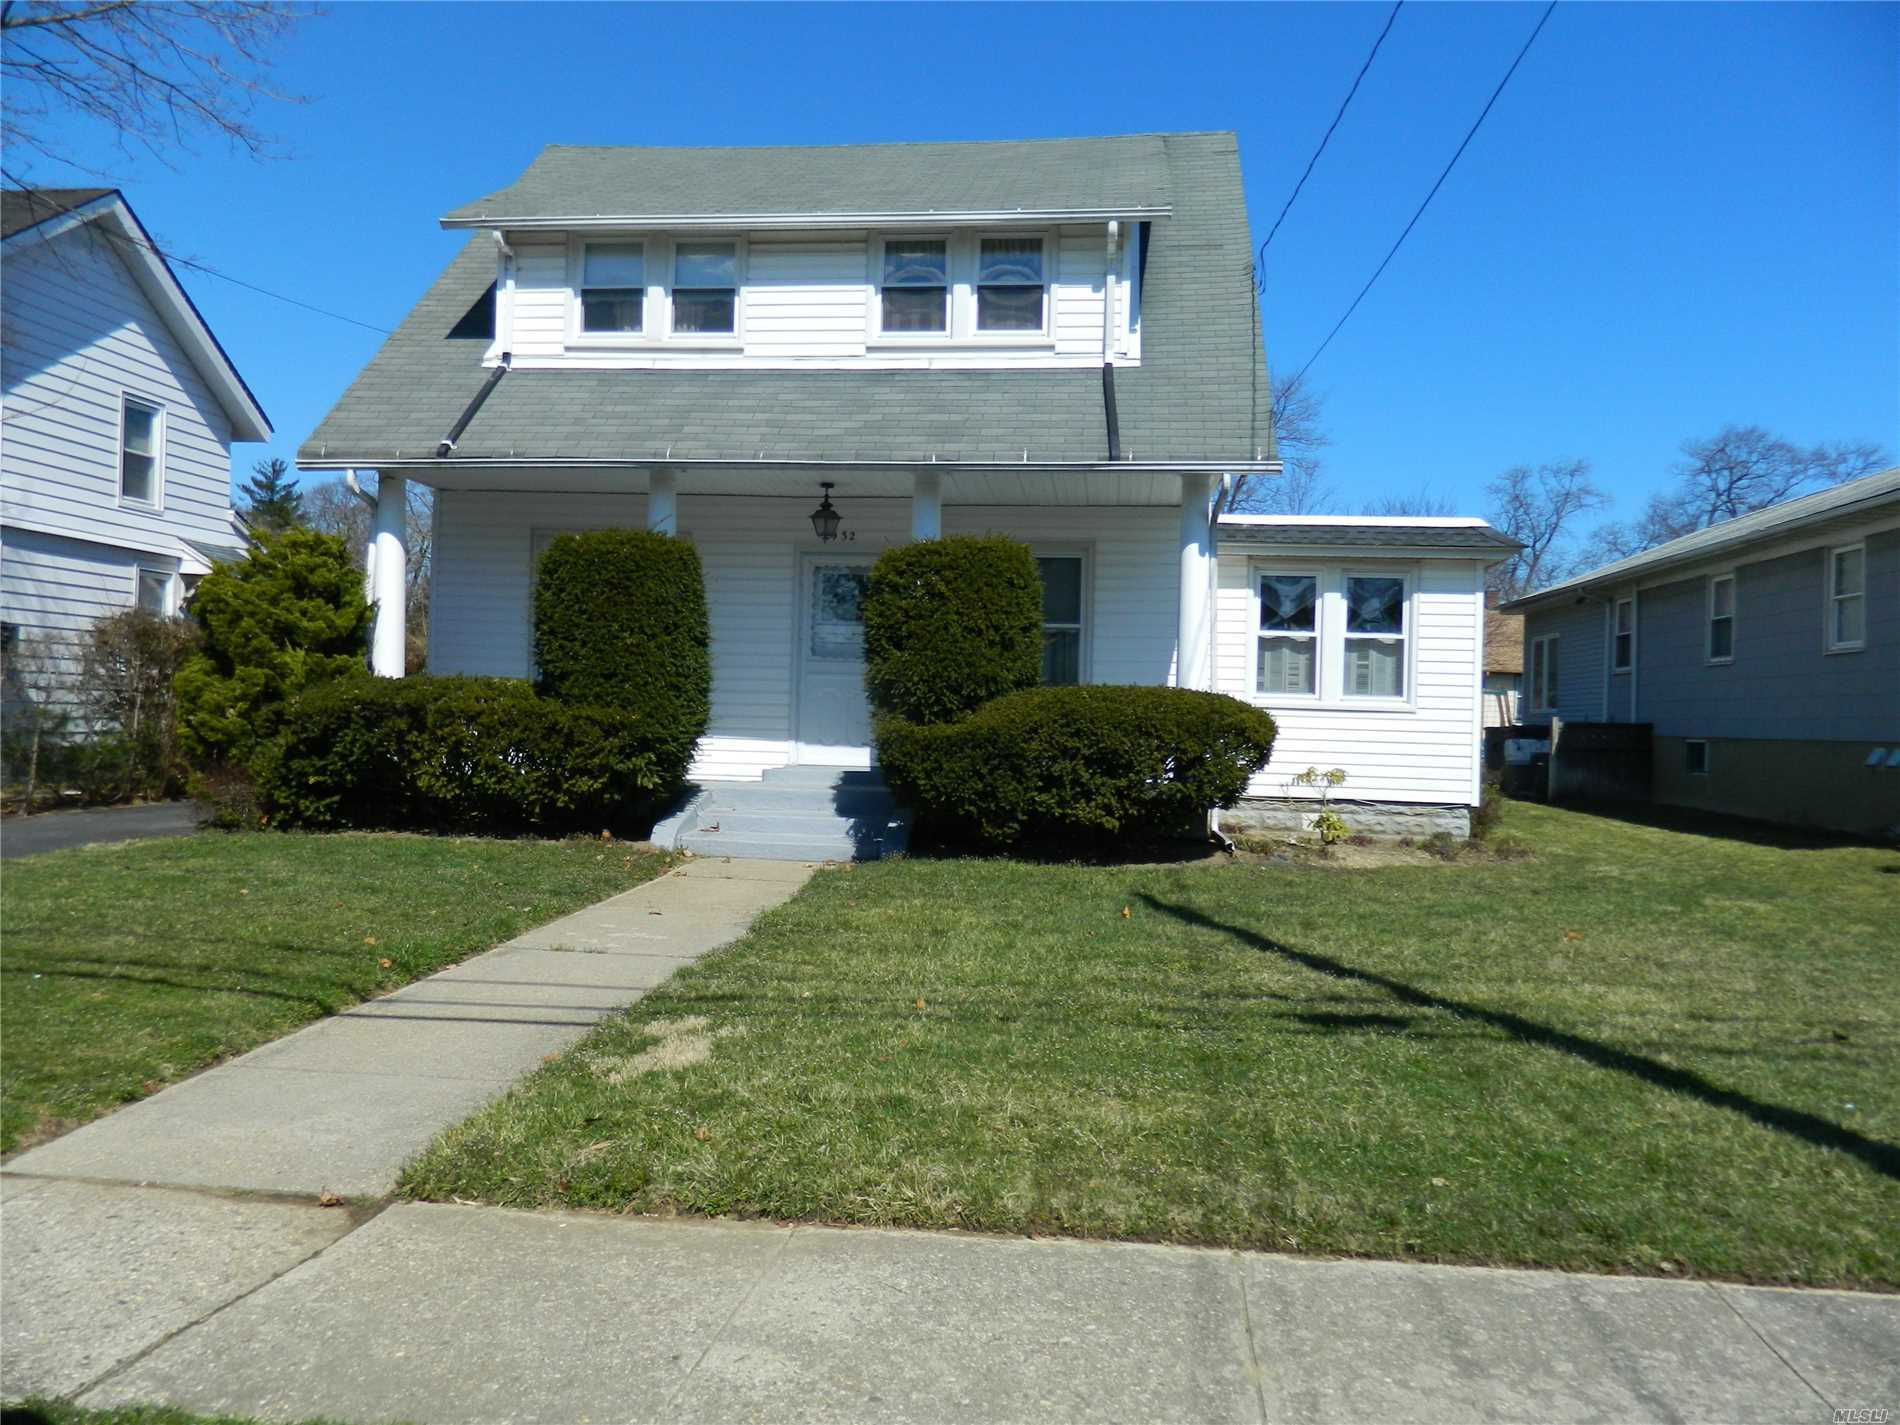 Charming 4 Bedroom Colonial Home with high ceilings, large backyard, and hardwood floors throughout! Sold as is.